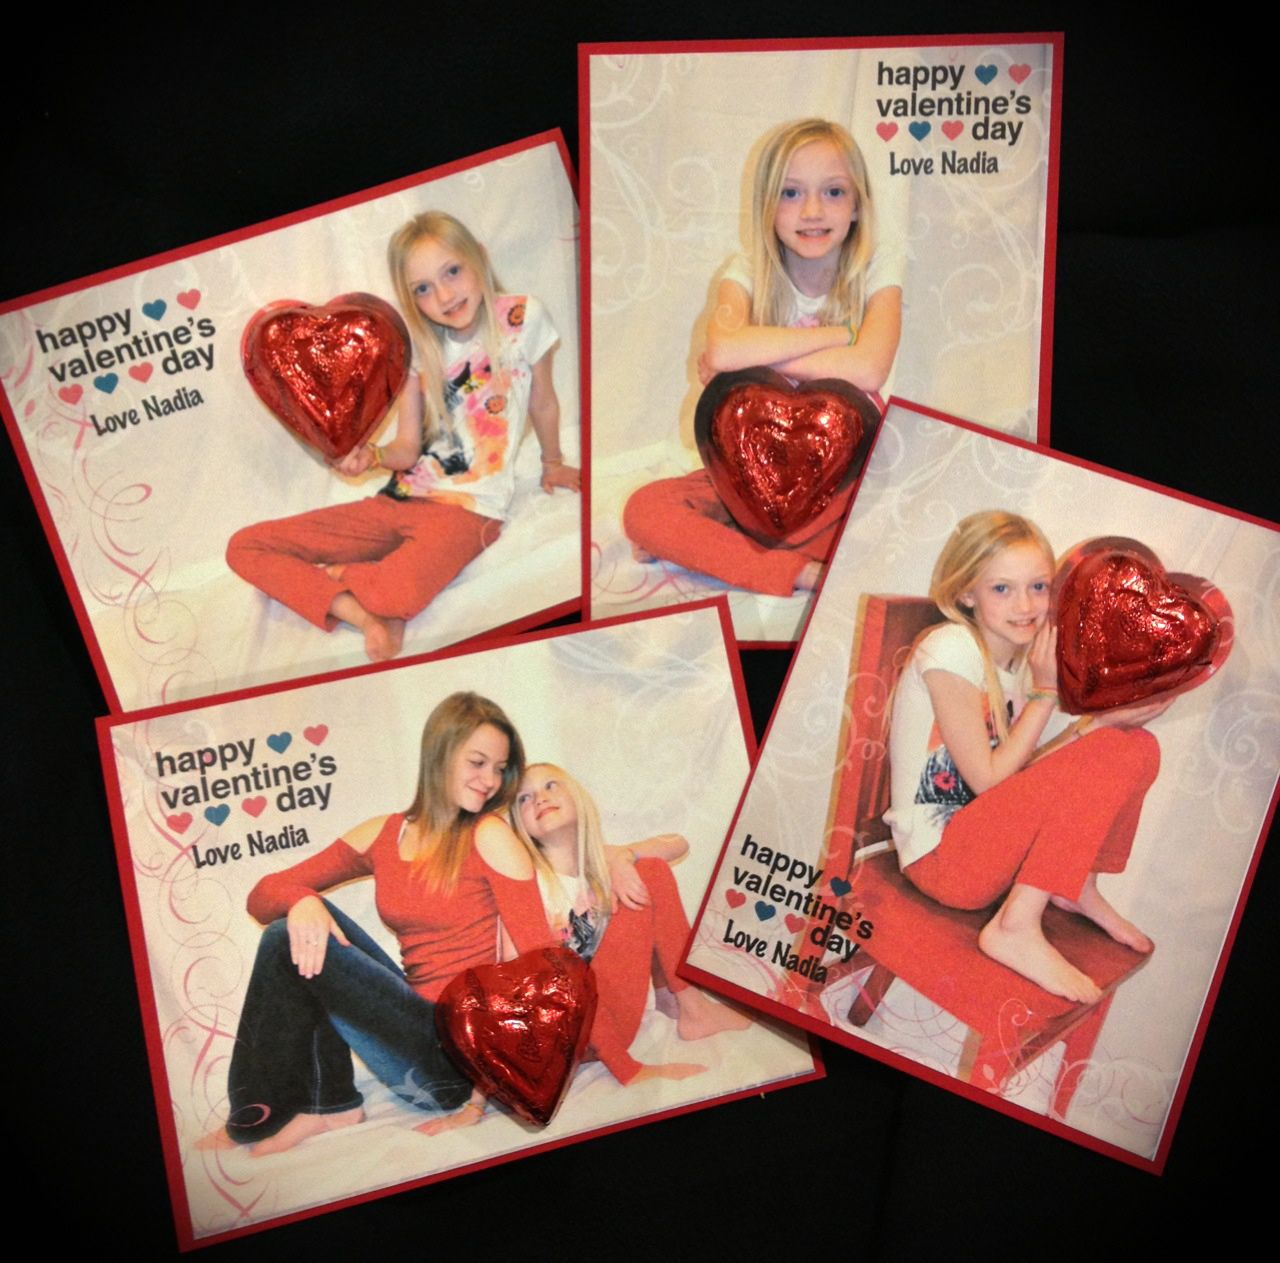 Custom Valentines made with My Digital Studio MDS.  https://www.facebook.com/photo.php?fbid=10151381663711598=a.301256656597.146314.283168521597=3